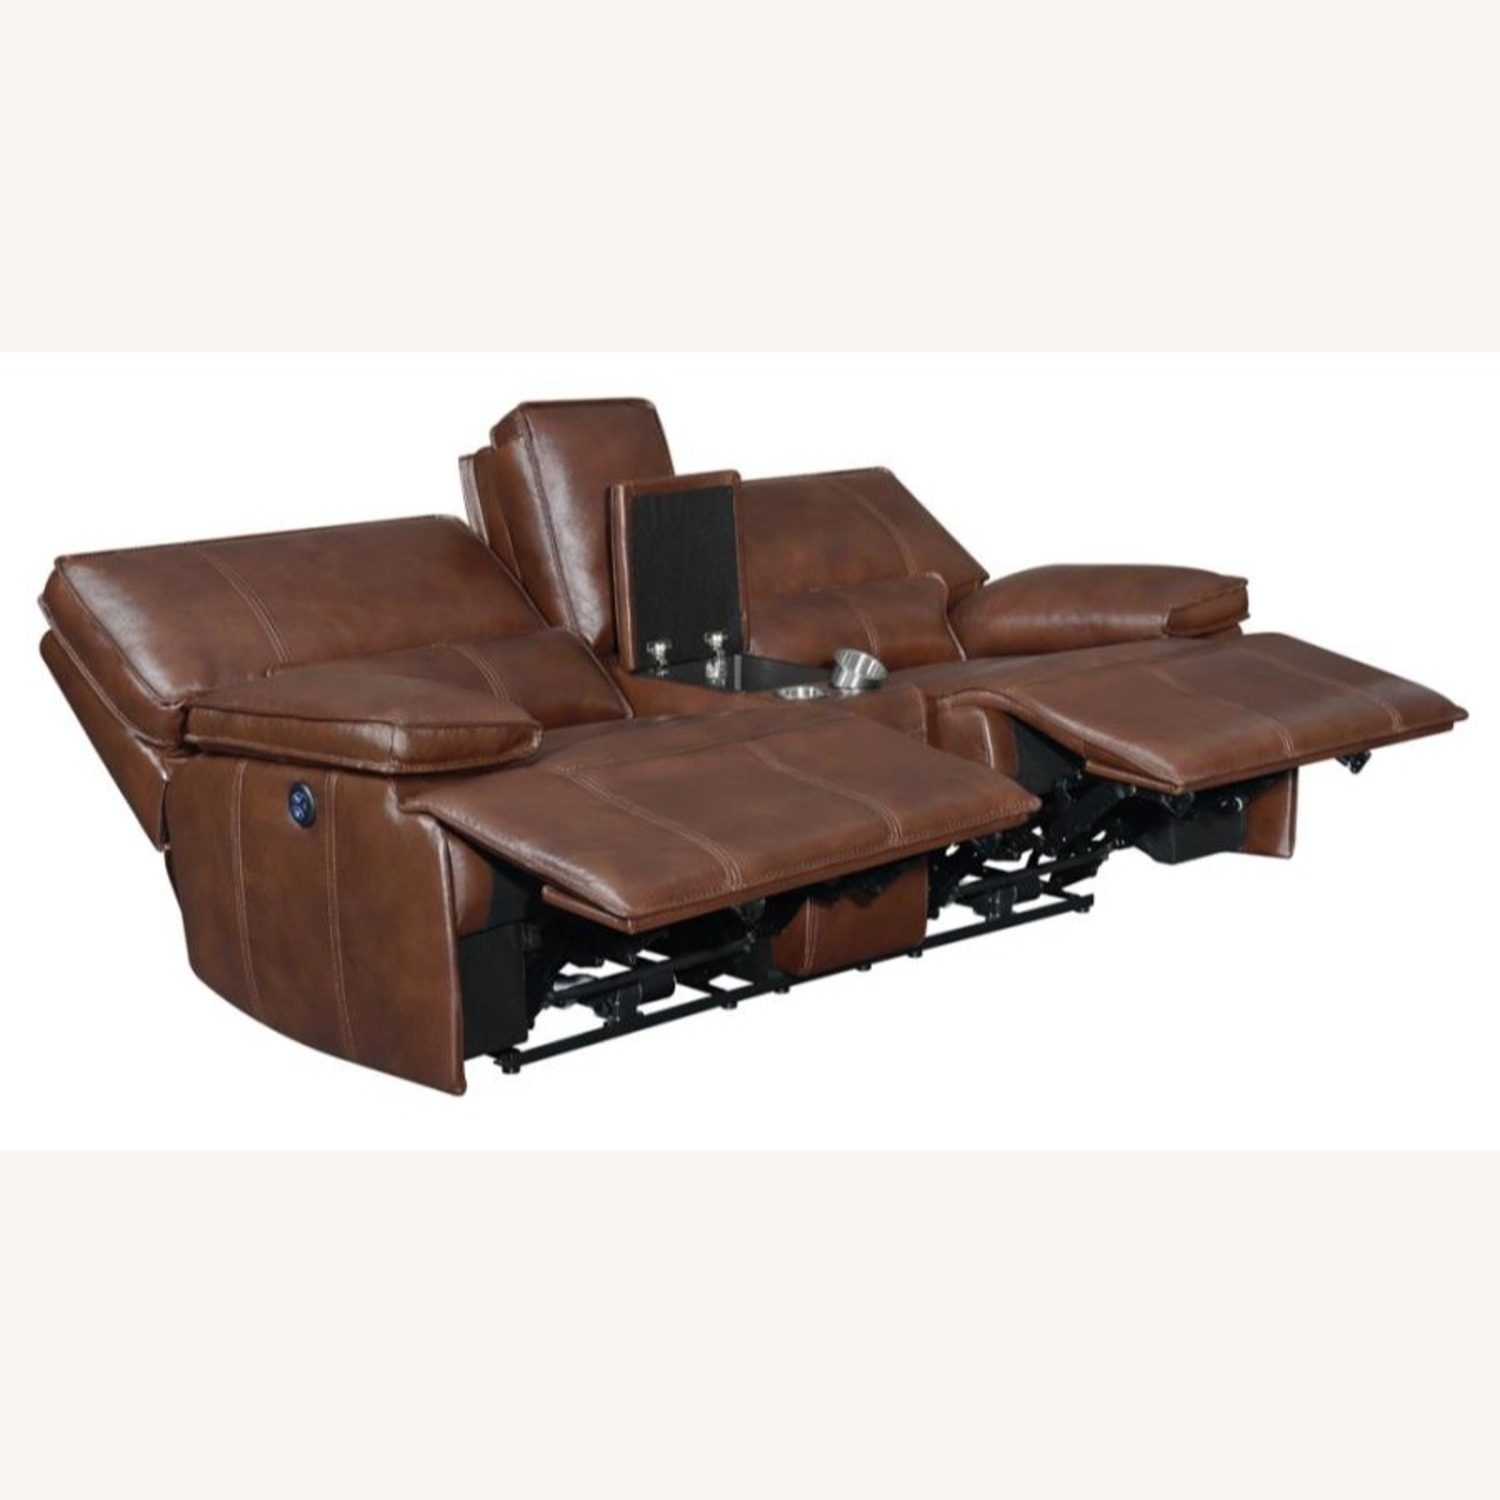 Power Loveseat In Saddle Brown W/ Console - image-1